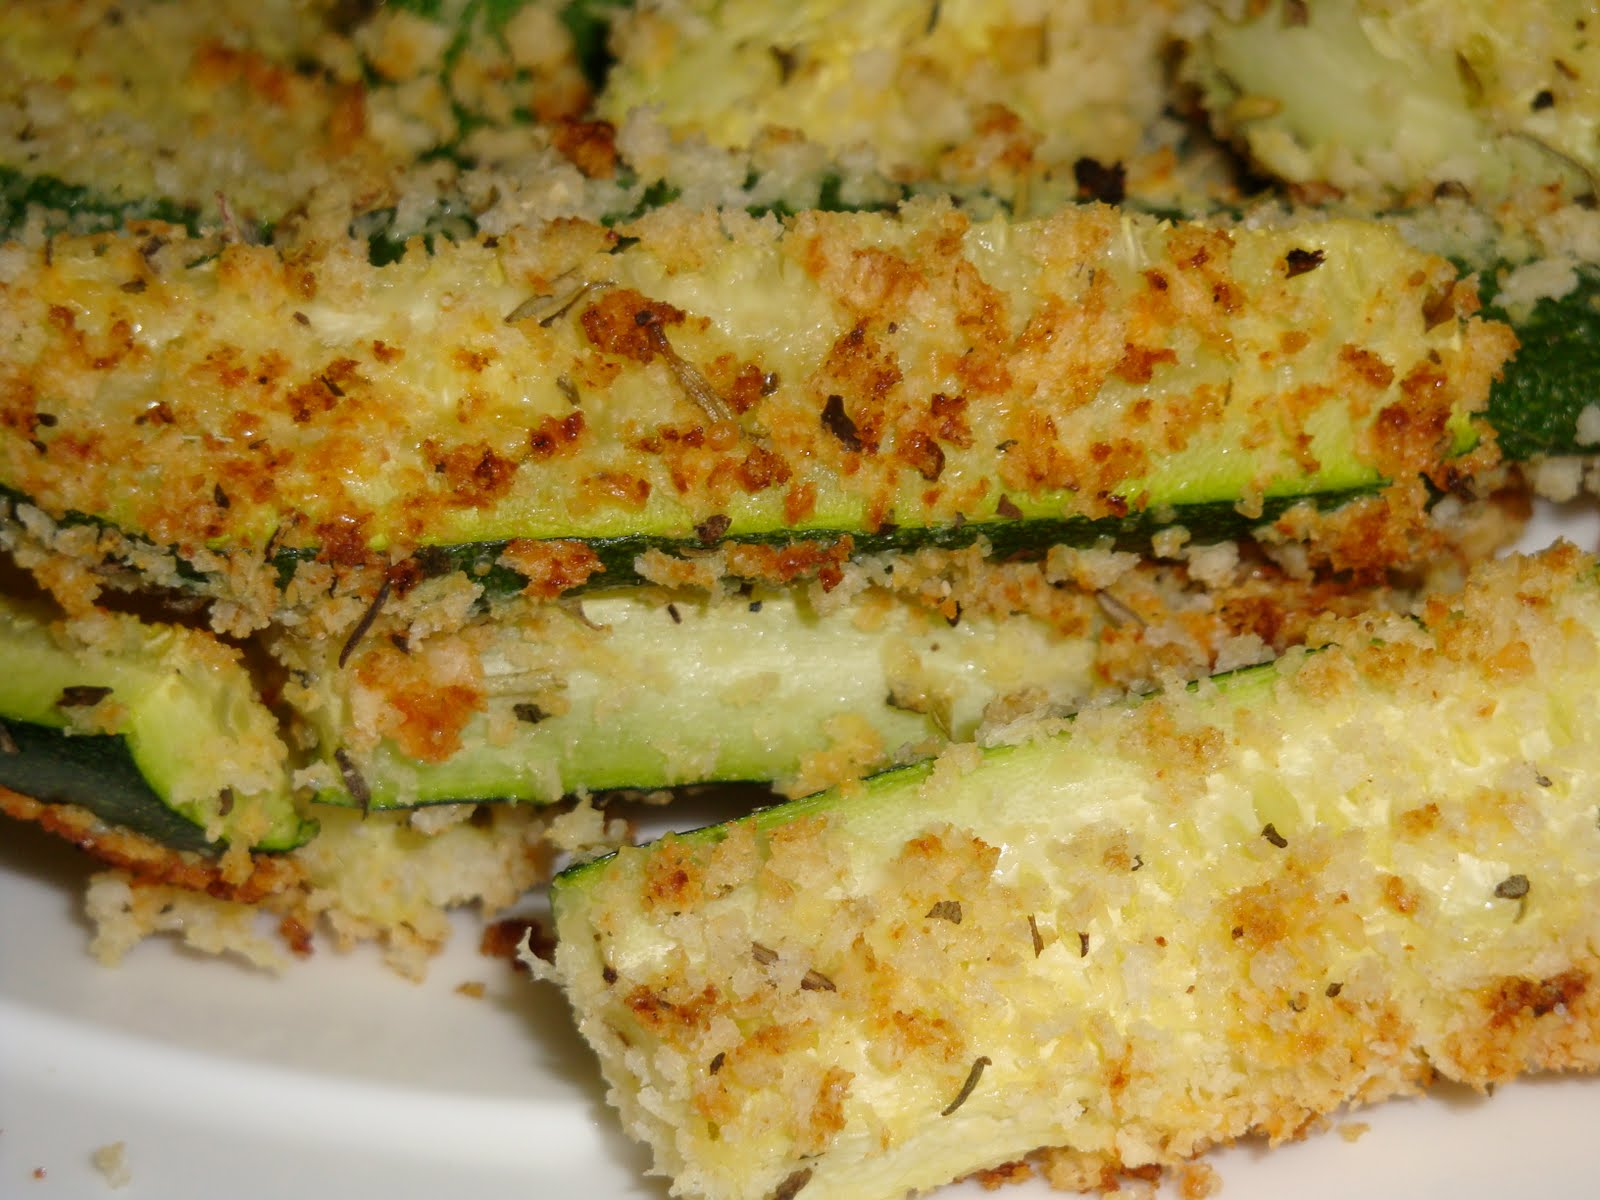 simply made with love: Baked Zucchini Sticks